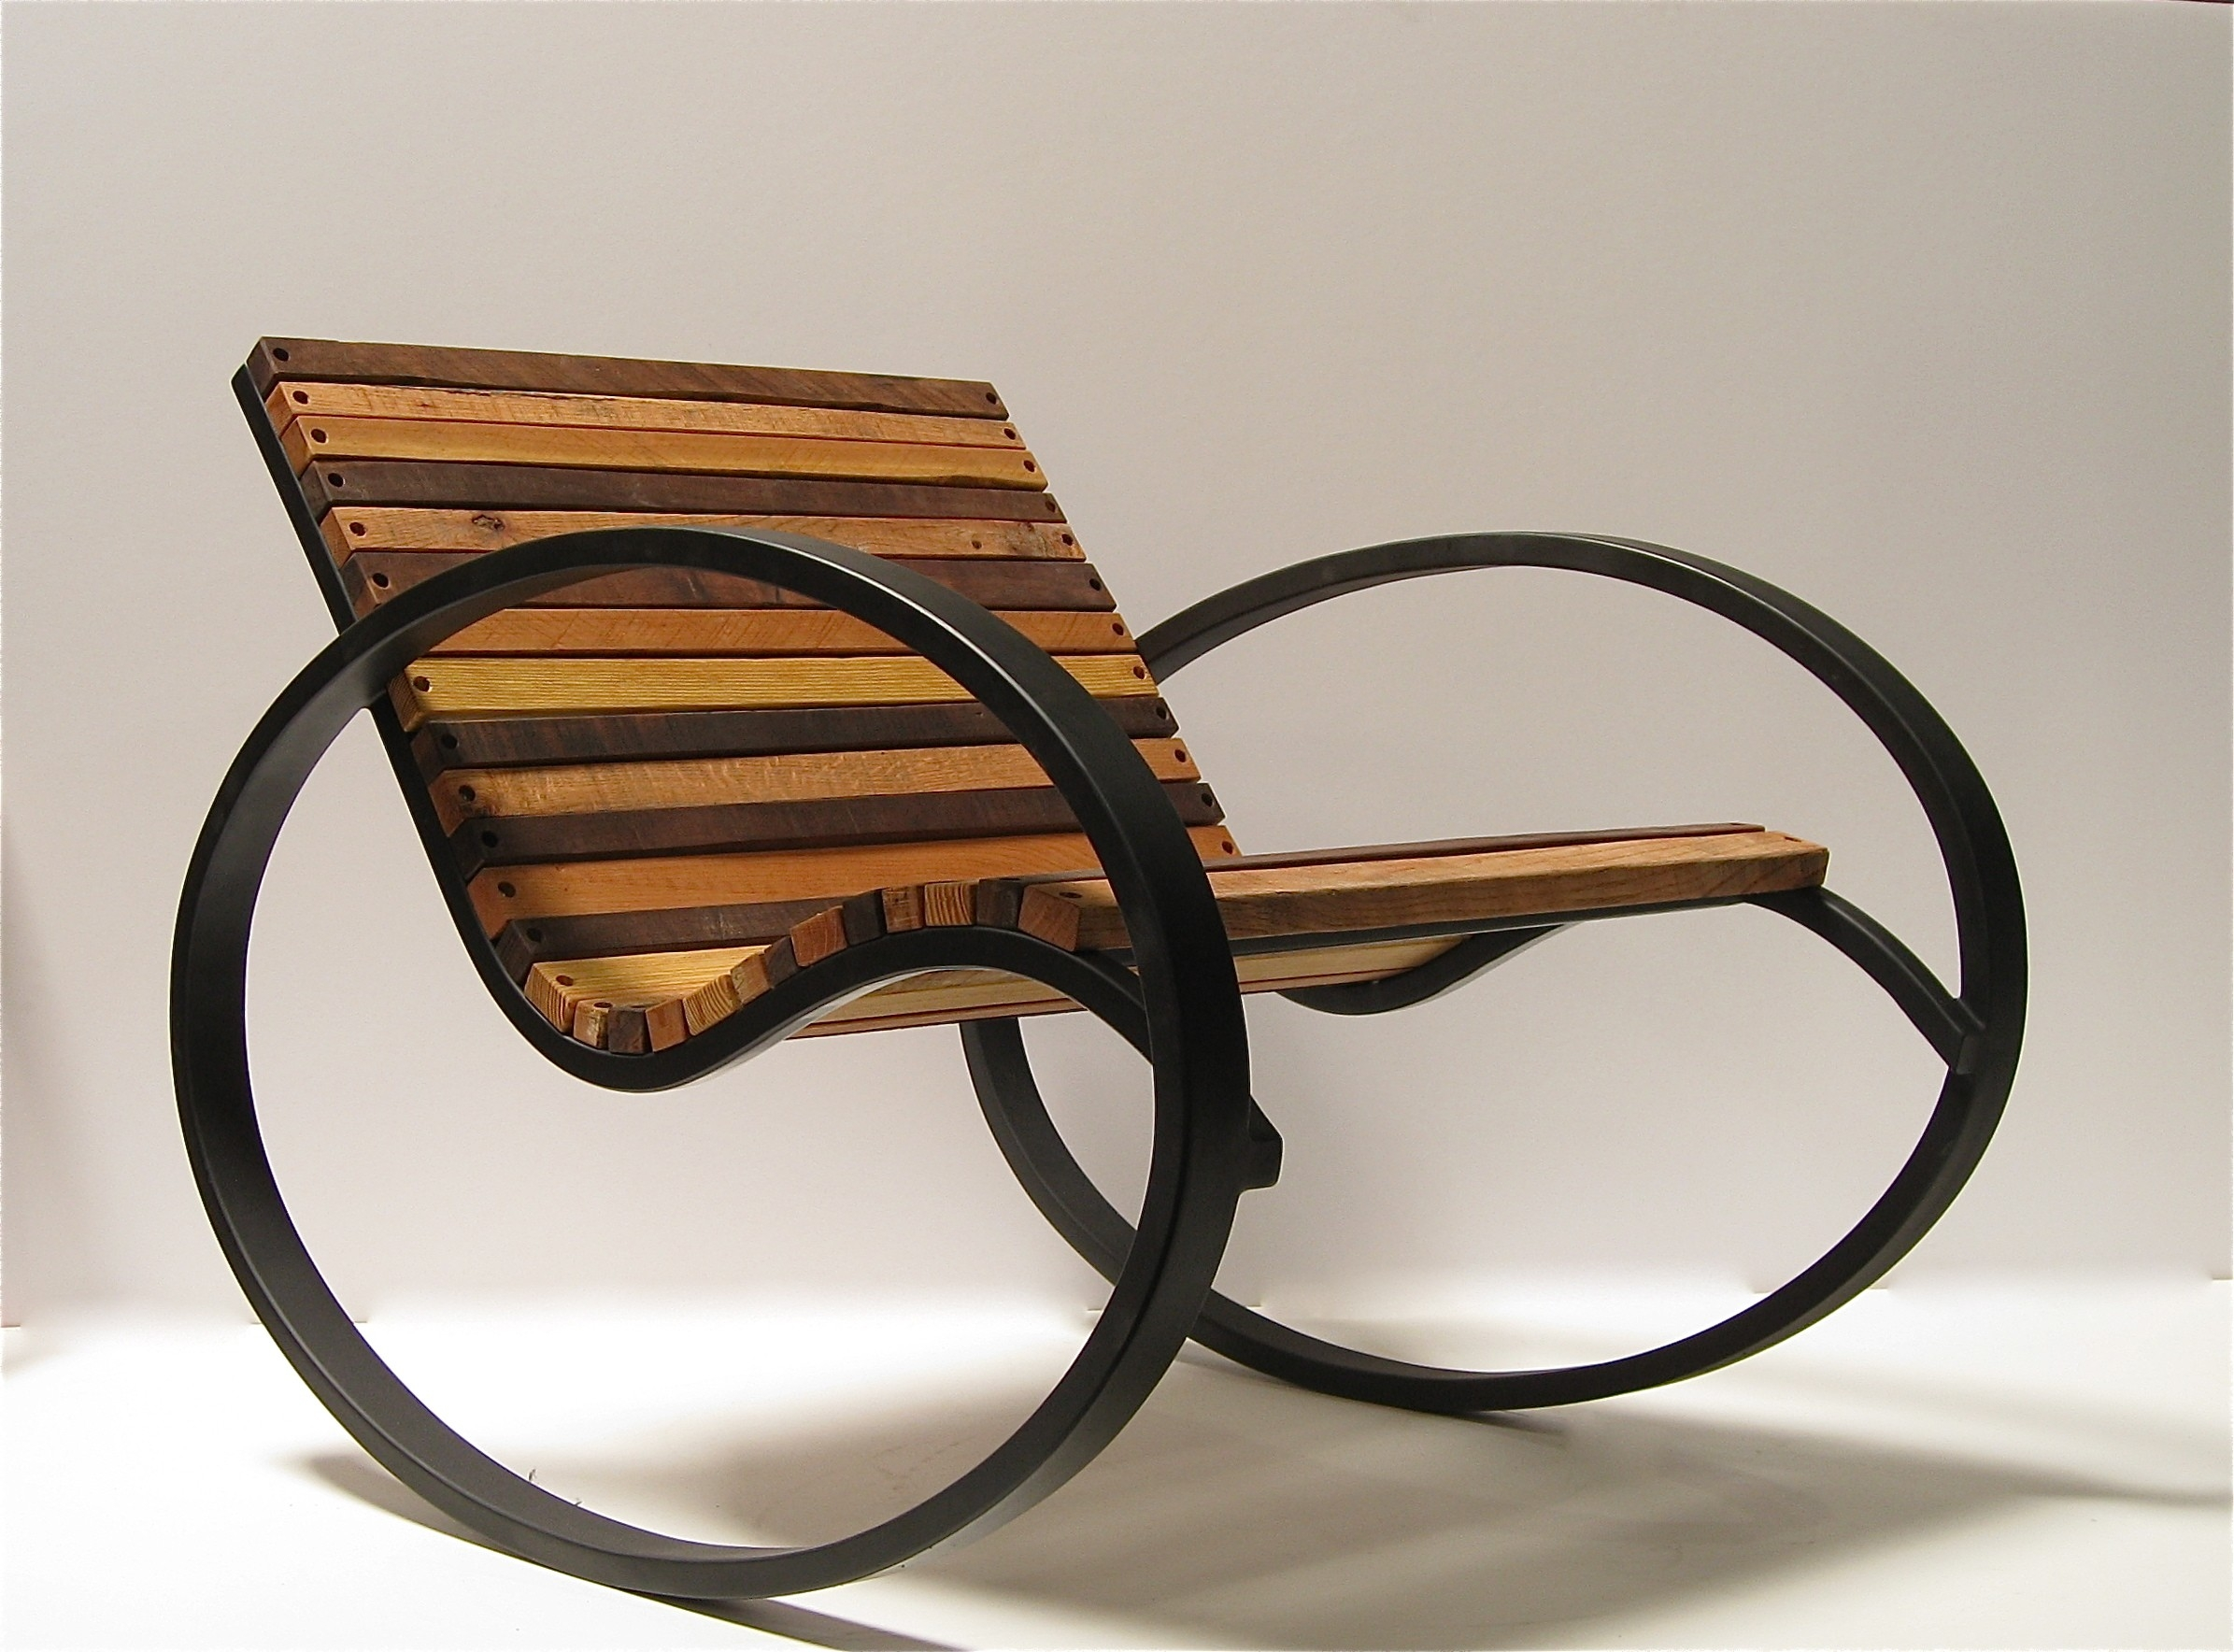 Genial Unique Rocking Chairs 7